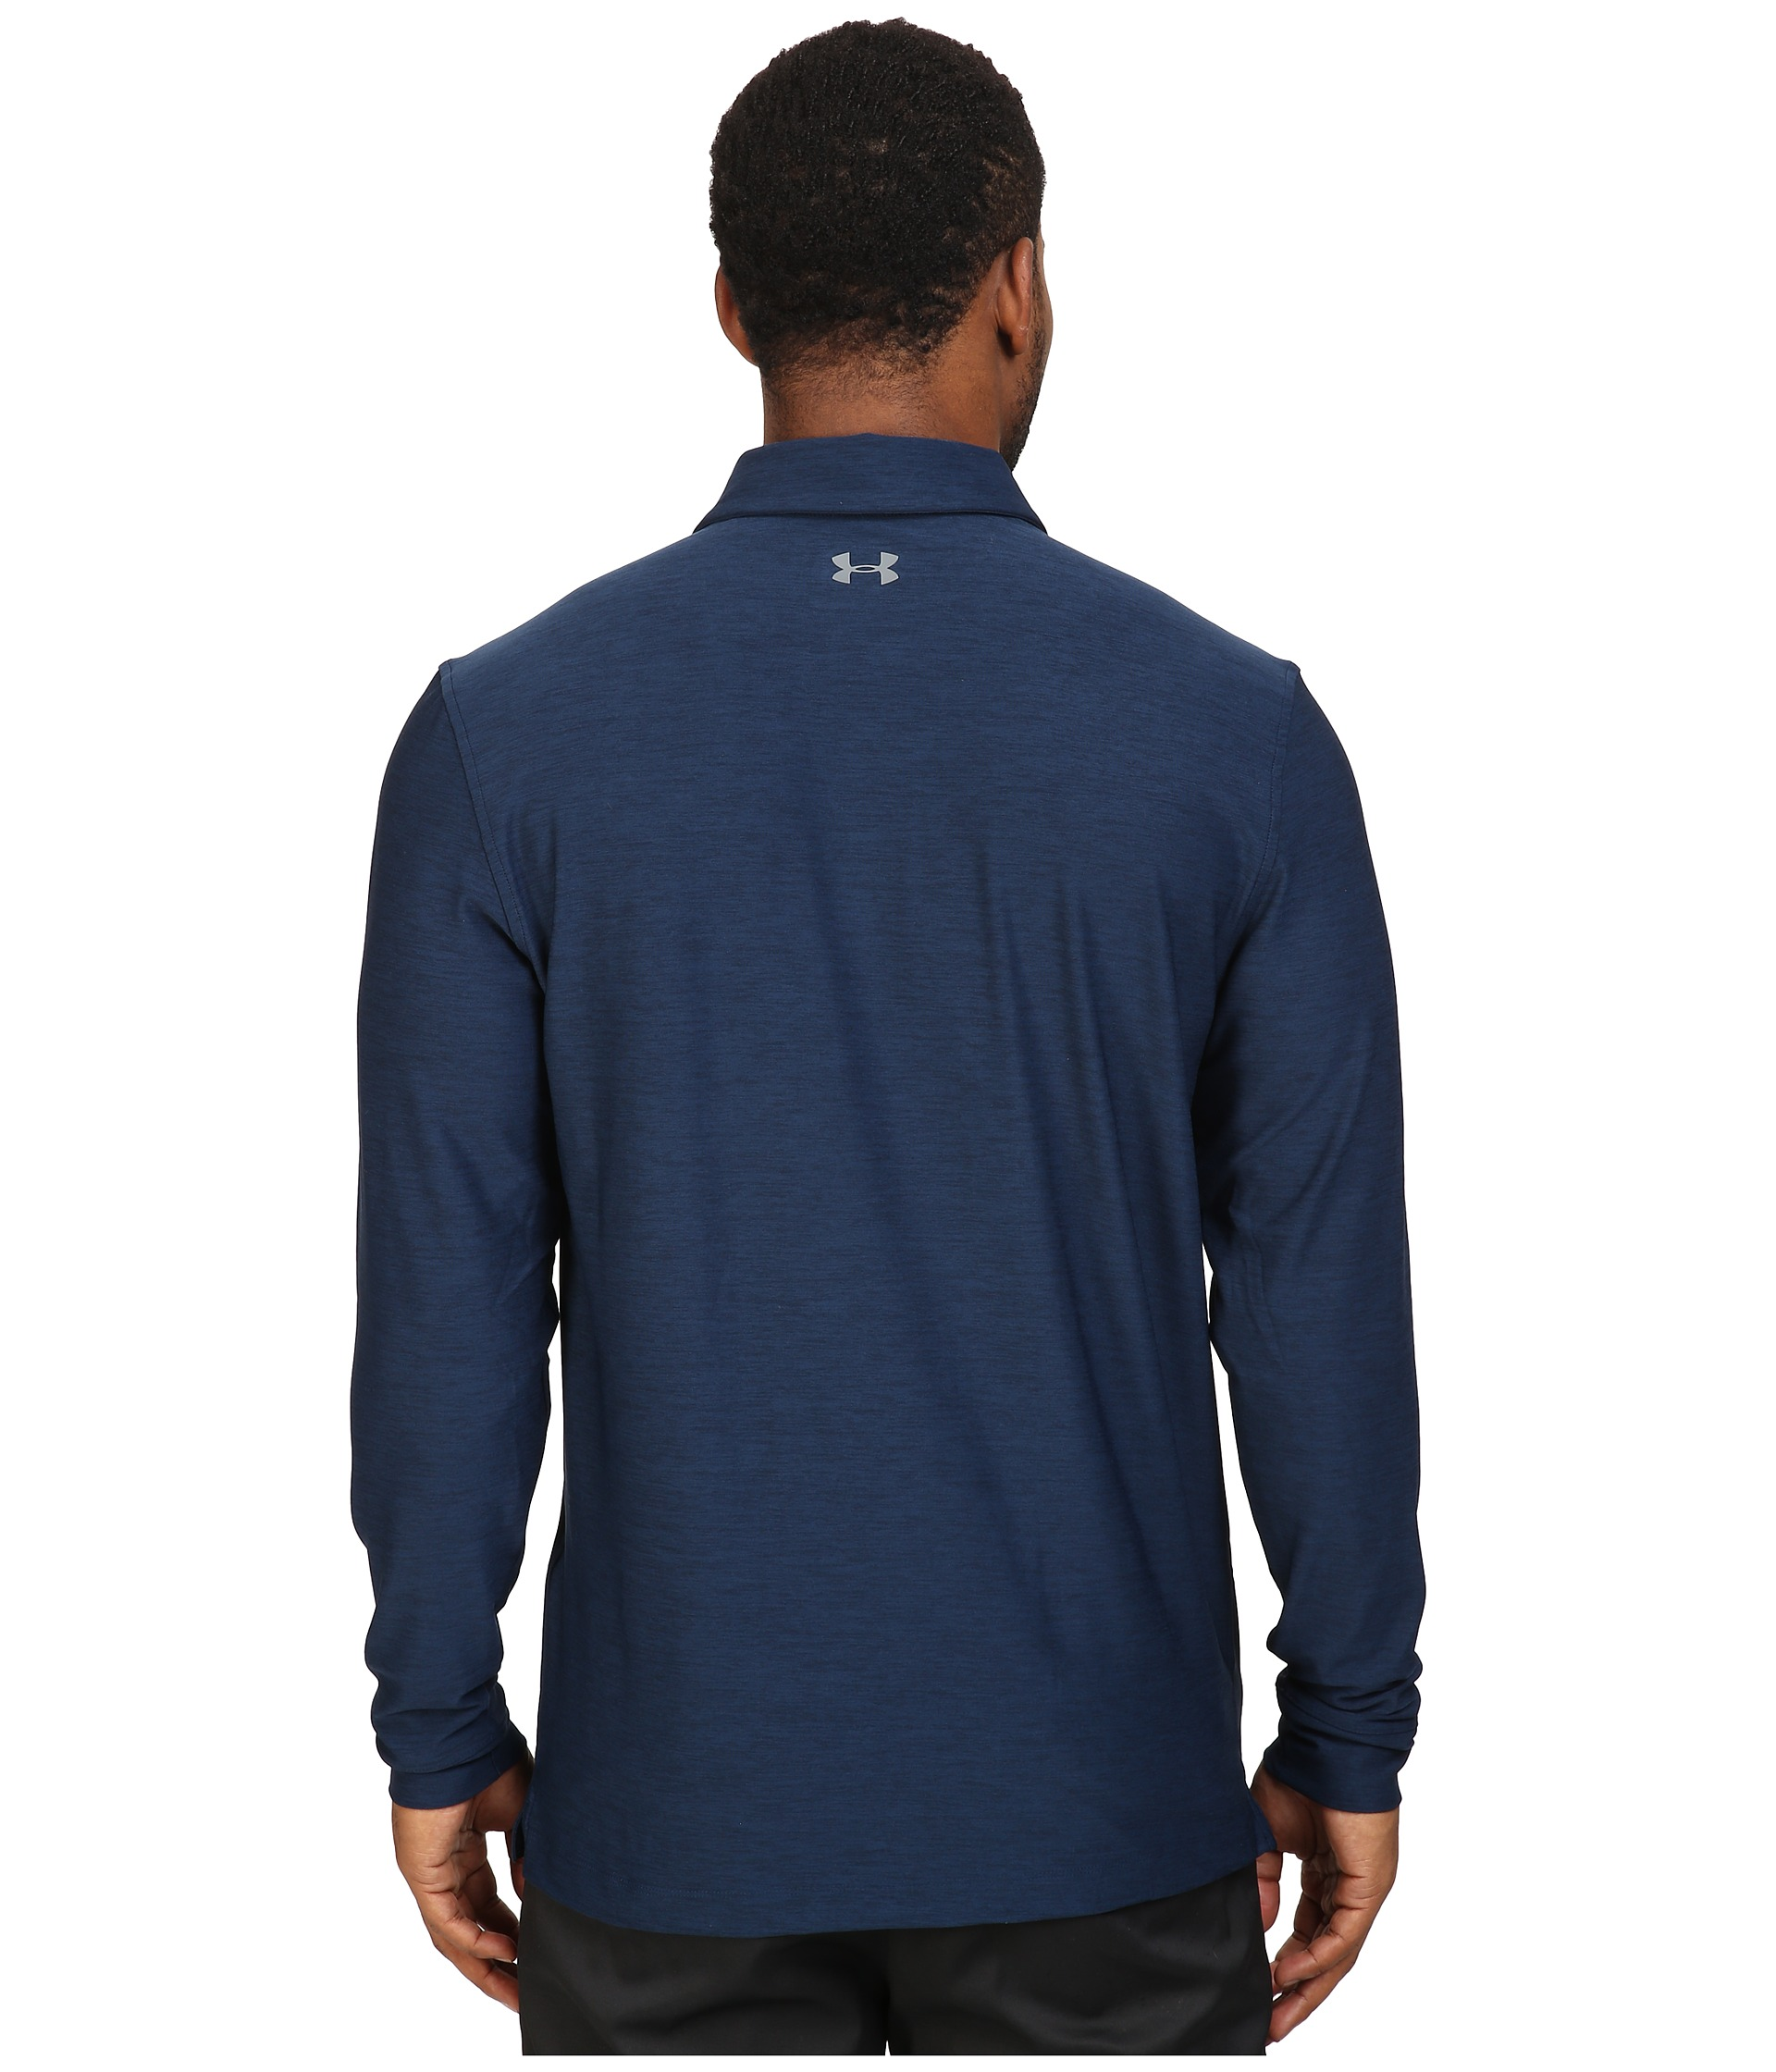 Under Armor Long Sleeve Polo Cheap Off53 The Largest Catalog